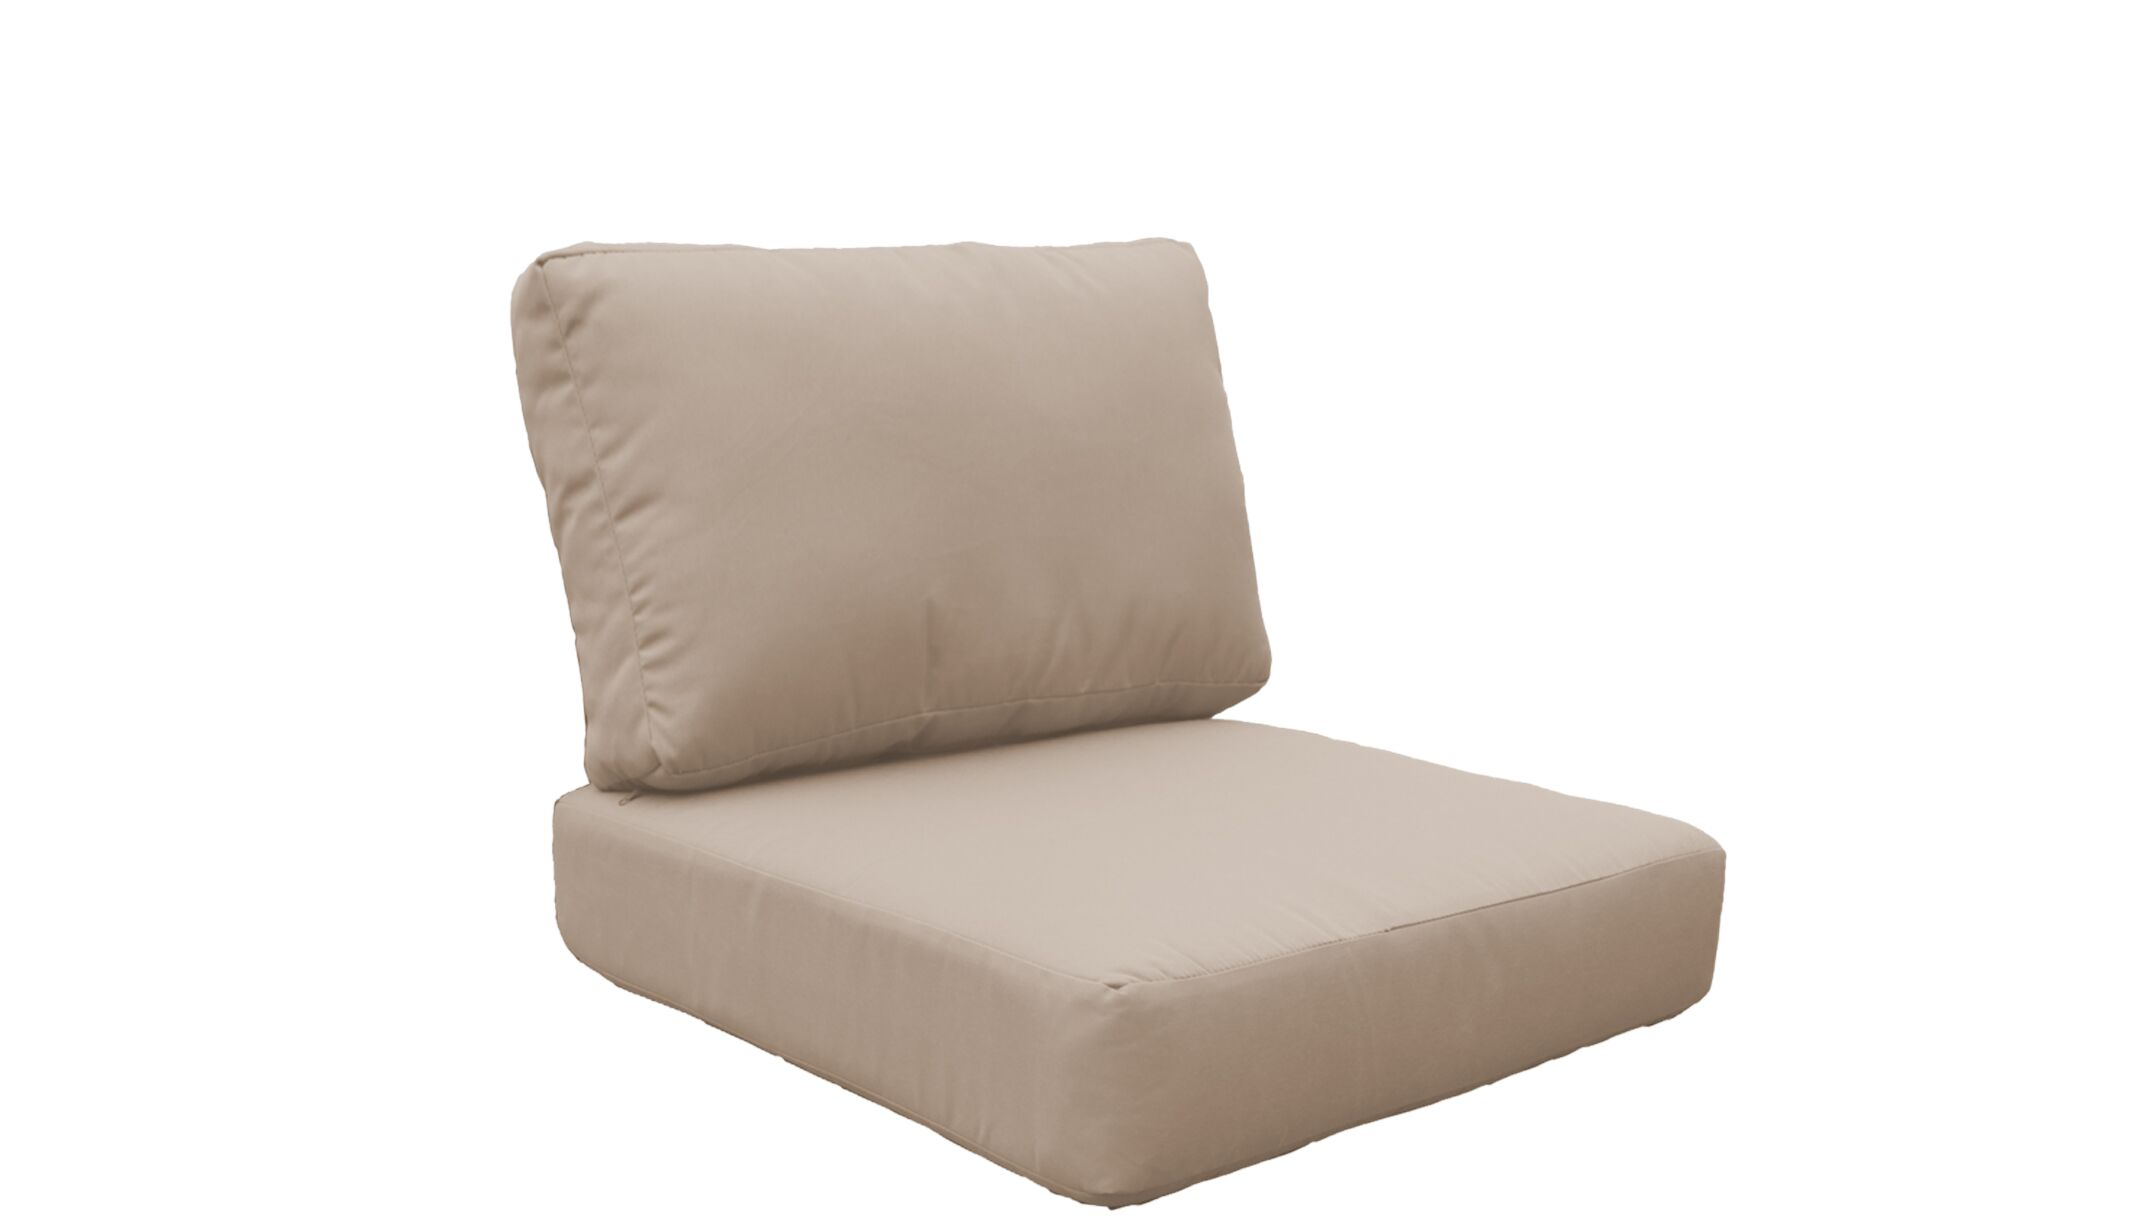 Fairmont 4 Piece Outdoor�Lounge Chair Cushion Set Fabric: Wheat